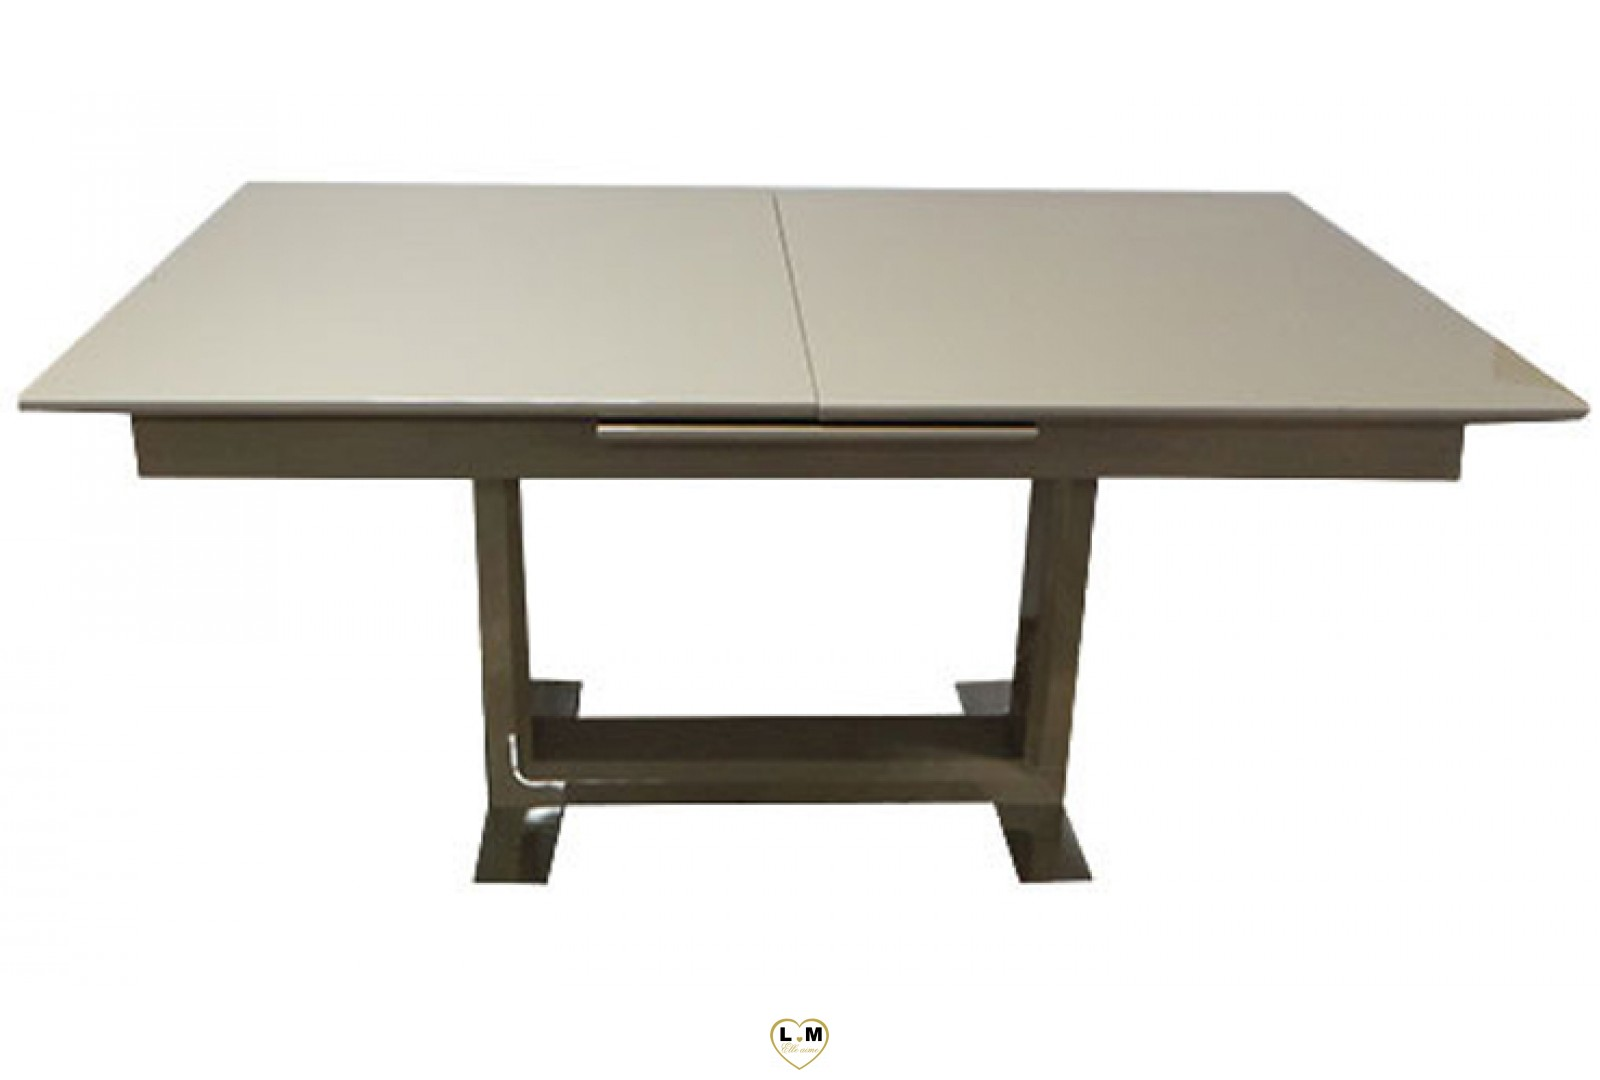 t11t table allonge salle a manger laque taupe lignemeuble com. Black Bedroom Furniture Sets. Home Design Ideas